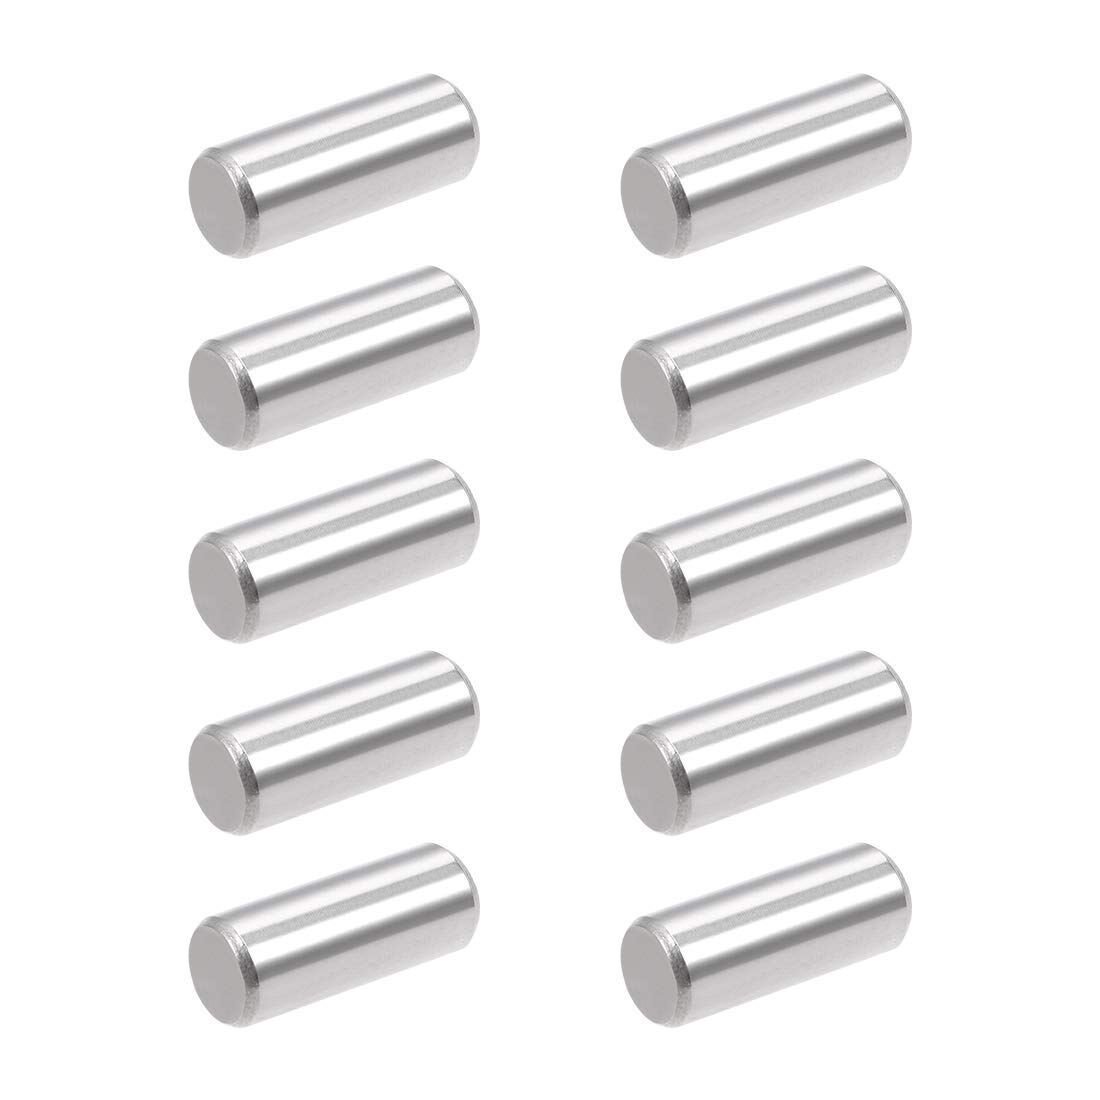 uxcell 10Pcs 10mm x 25mm Dowel Pin 304 Stainless Steel Wood Bunk Bed Dowel Pins Shelf Pegs Support Shelves Silver Tone